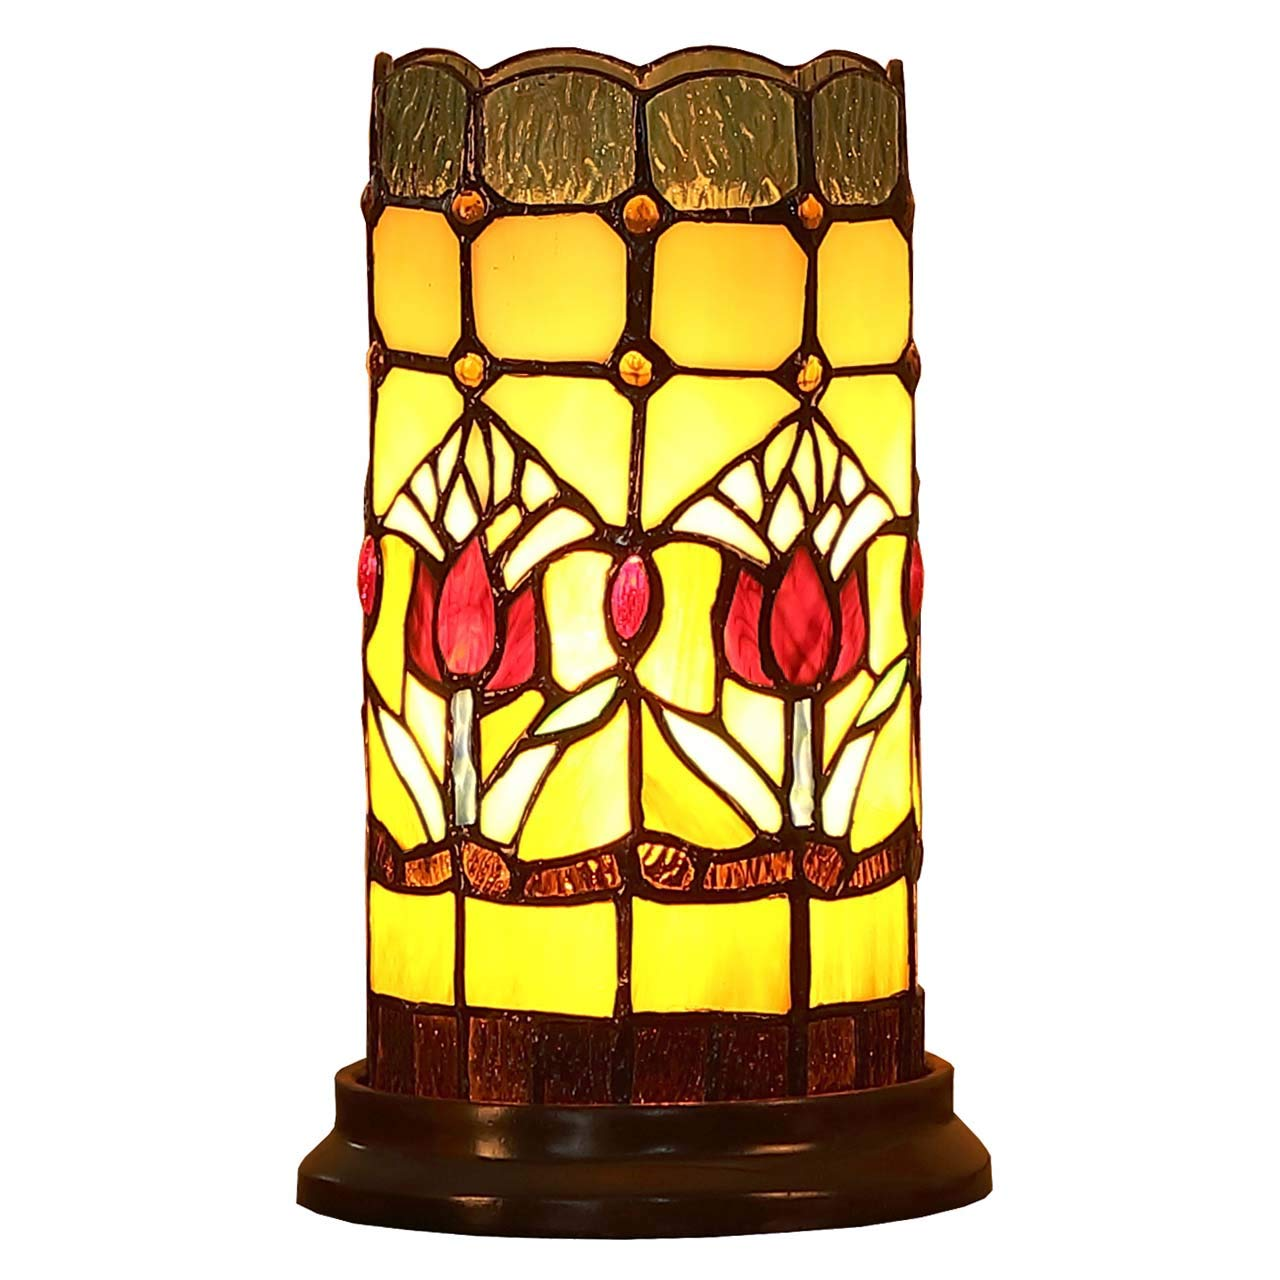 Bieye L10648 Tulip Flower Tiffany Style Stained Glass Mini Table Lamp Night Light with 5-inch Wide Lampshade for Bedside Bedroom Living Room, 10 inches Tall